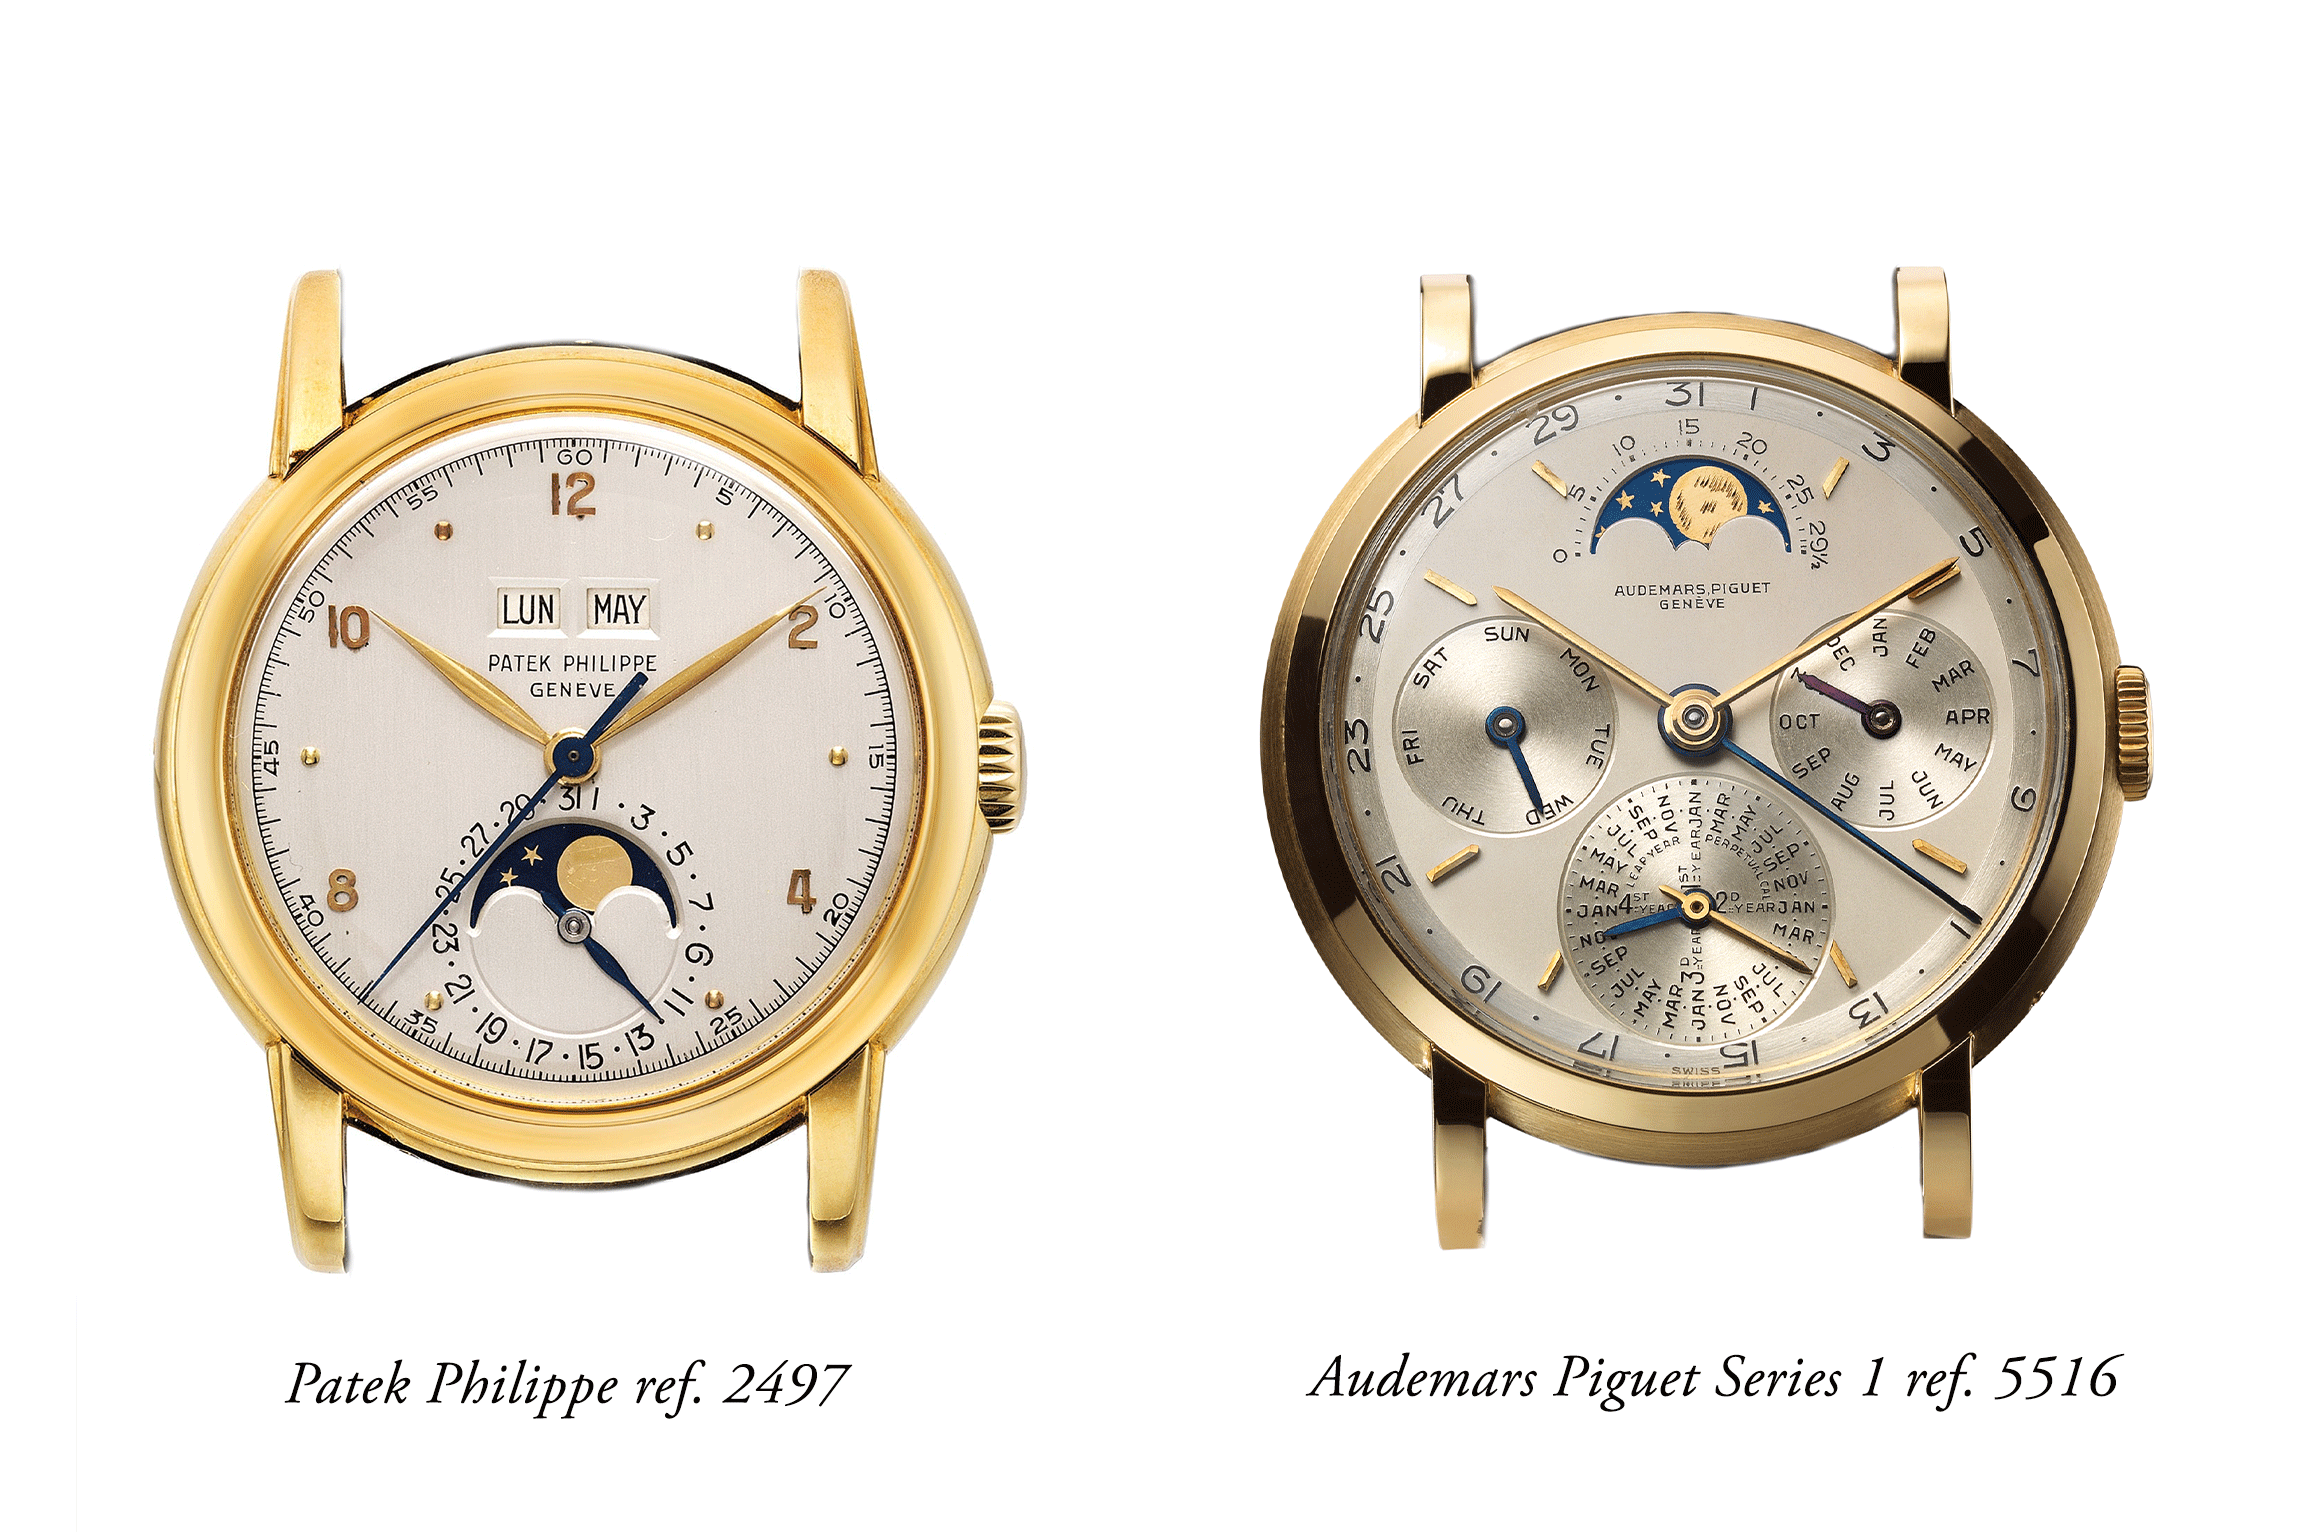 The Patek 2497 can be viewed as minimalist, even reductionist, while the Audemars 5516 is just the opposite, redolent with information. The AP is bold in styling while the Patek is restrained.